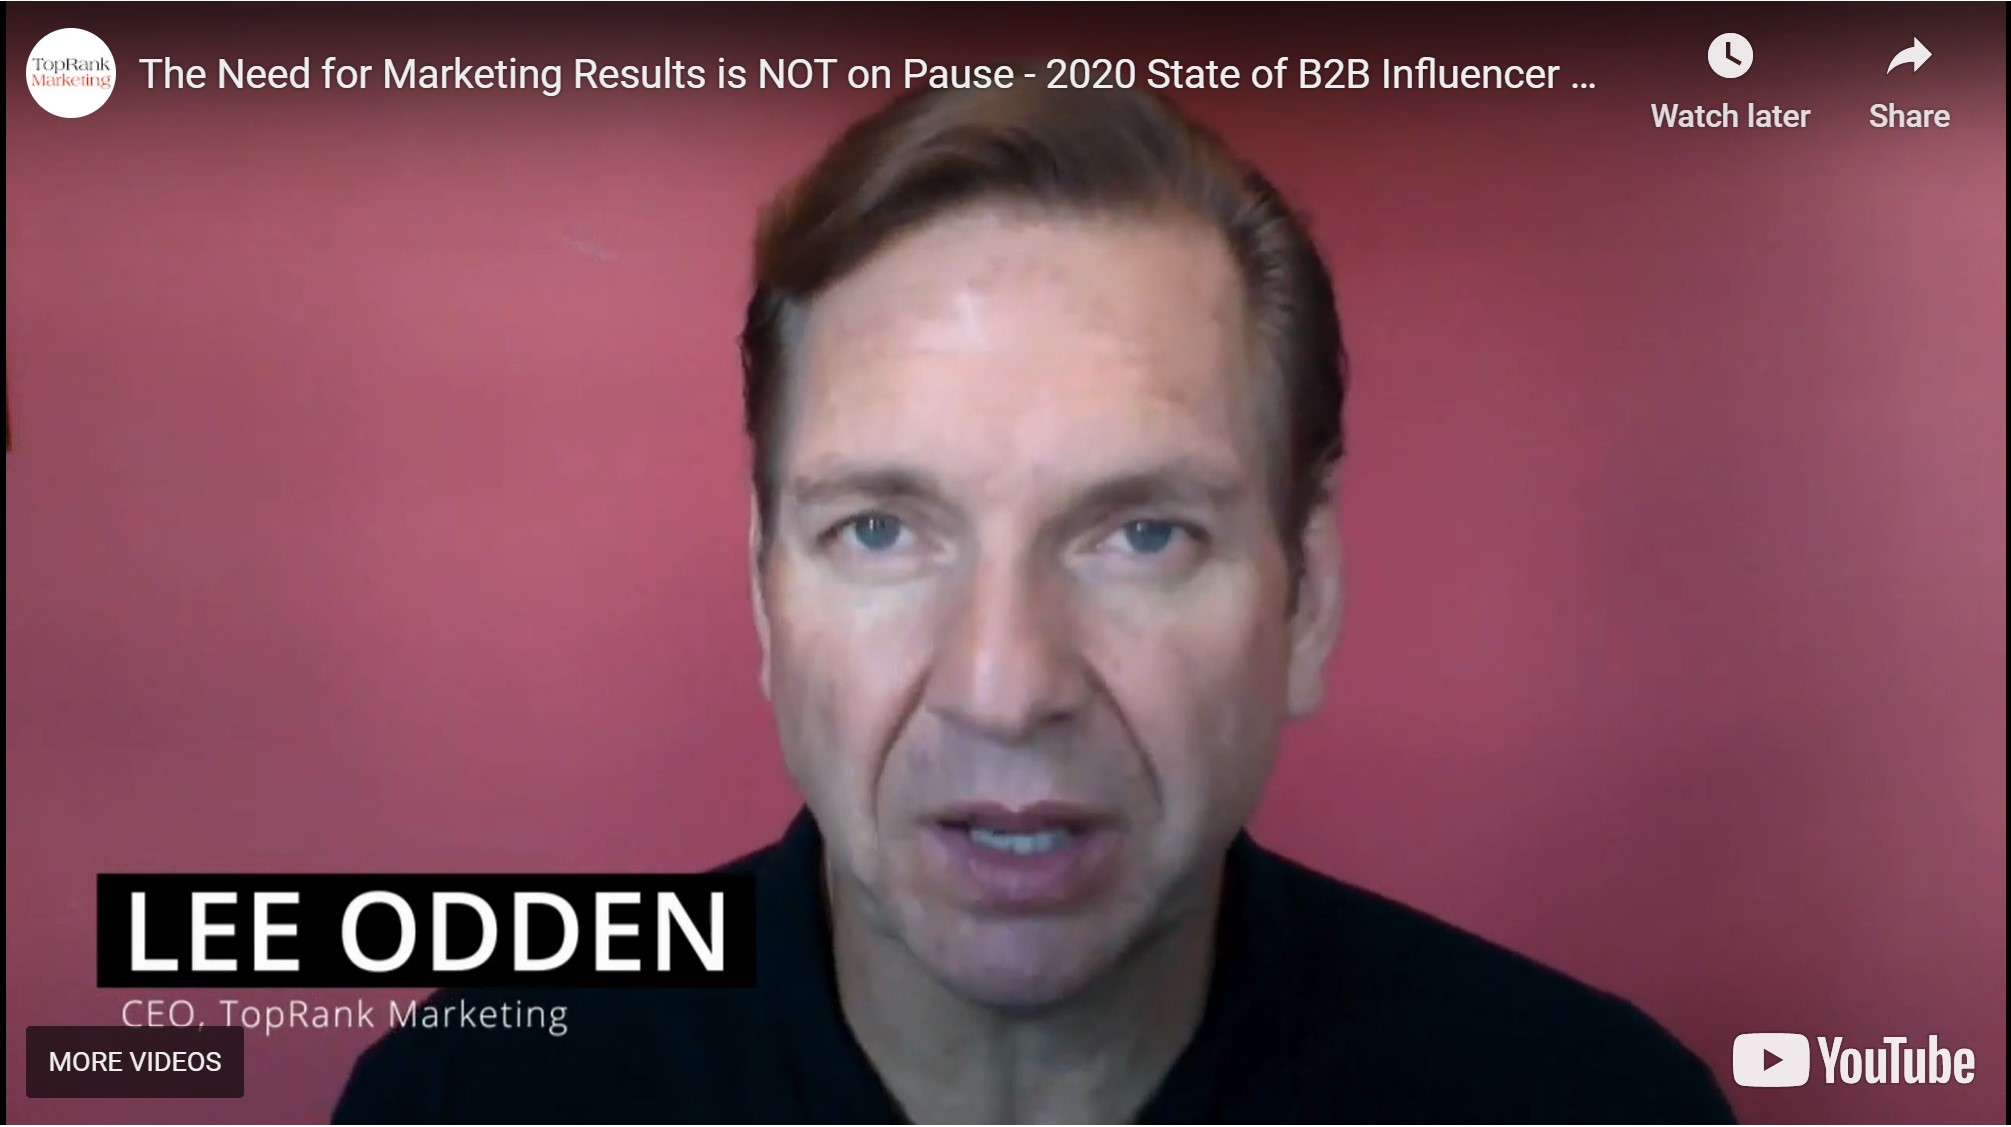 Marketing Results are NOT on Pause